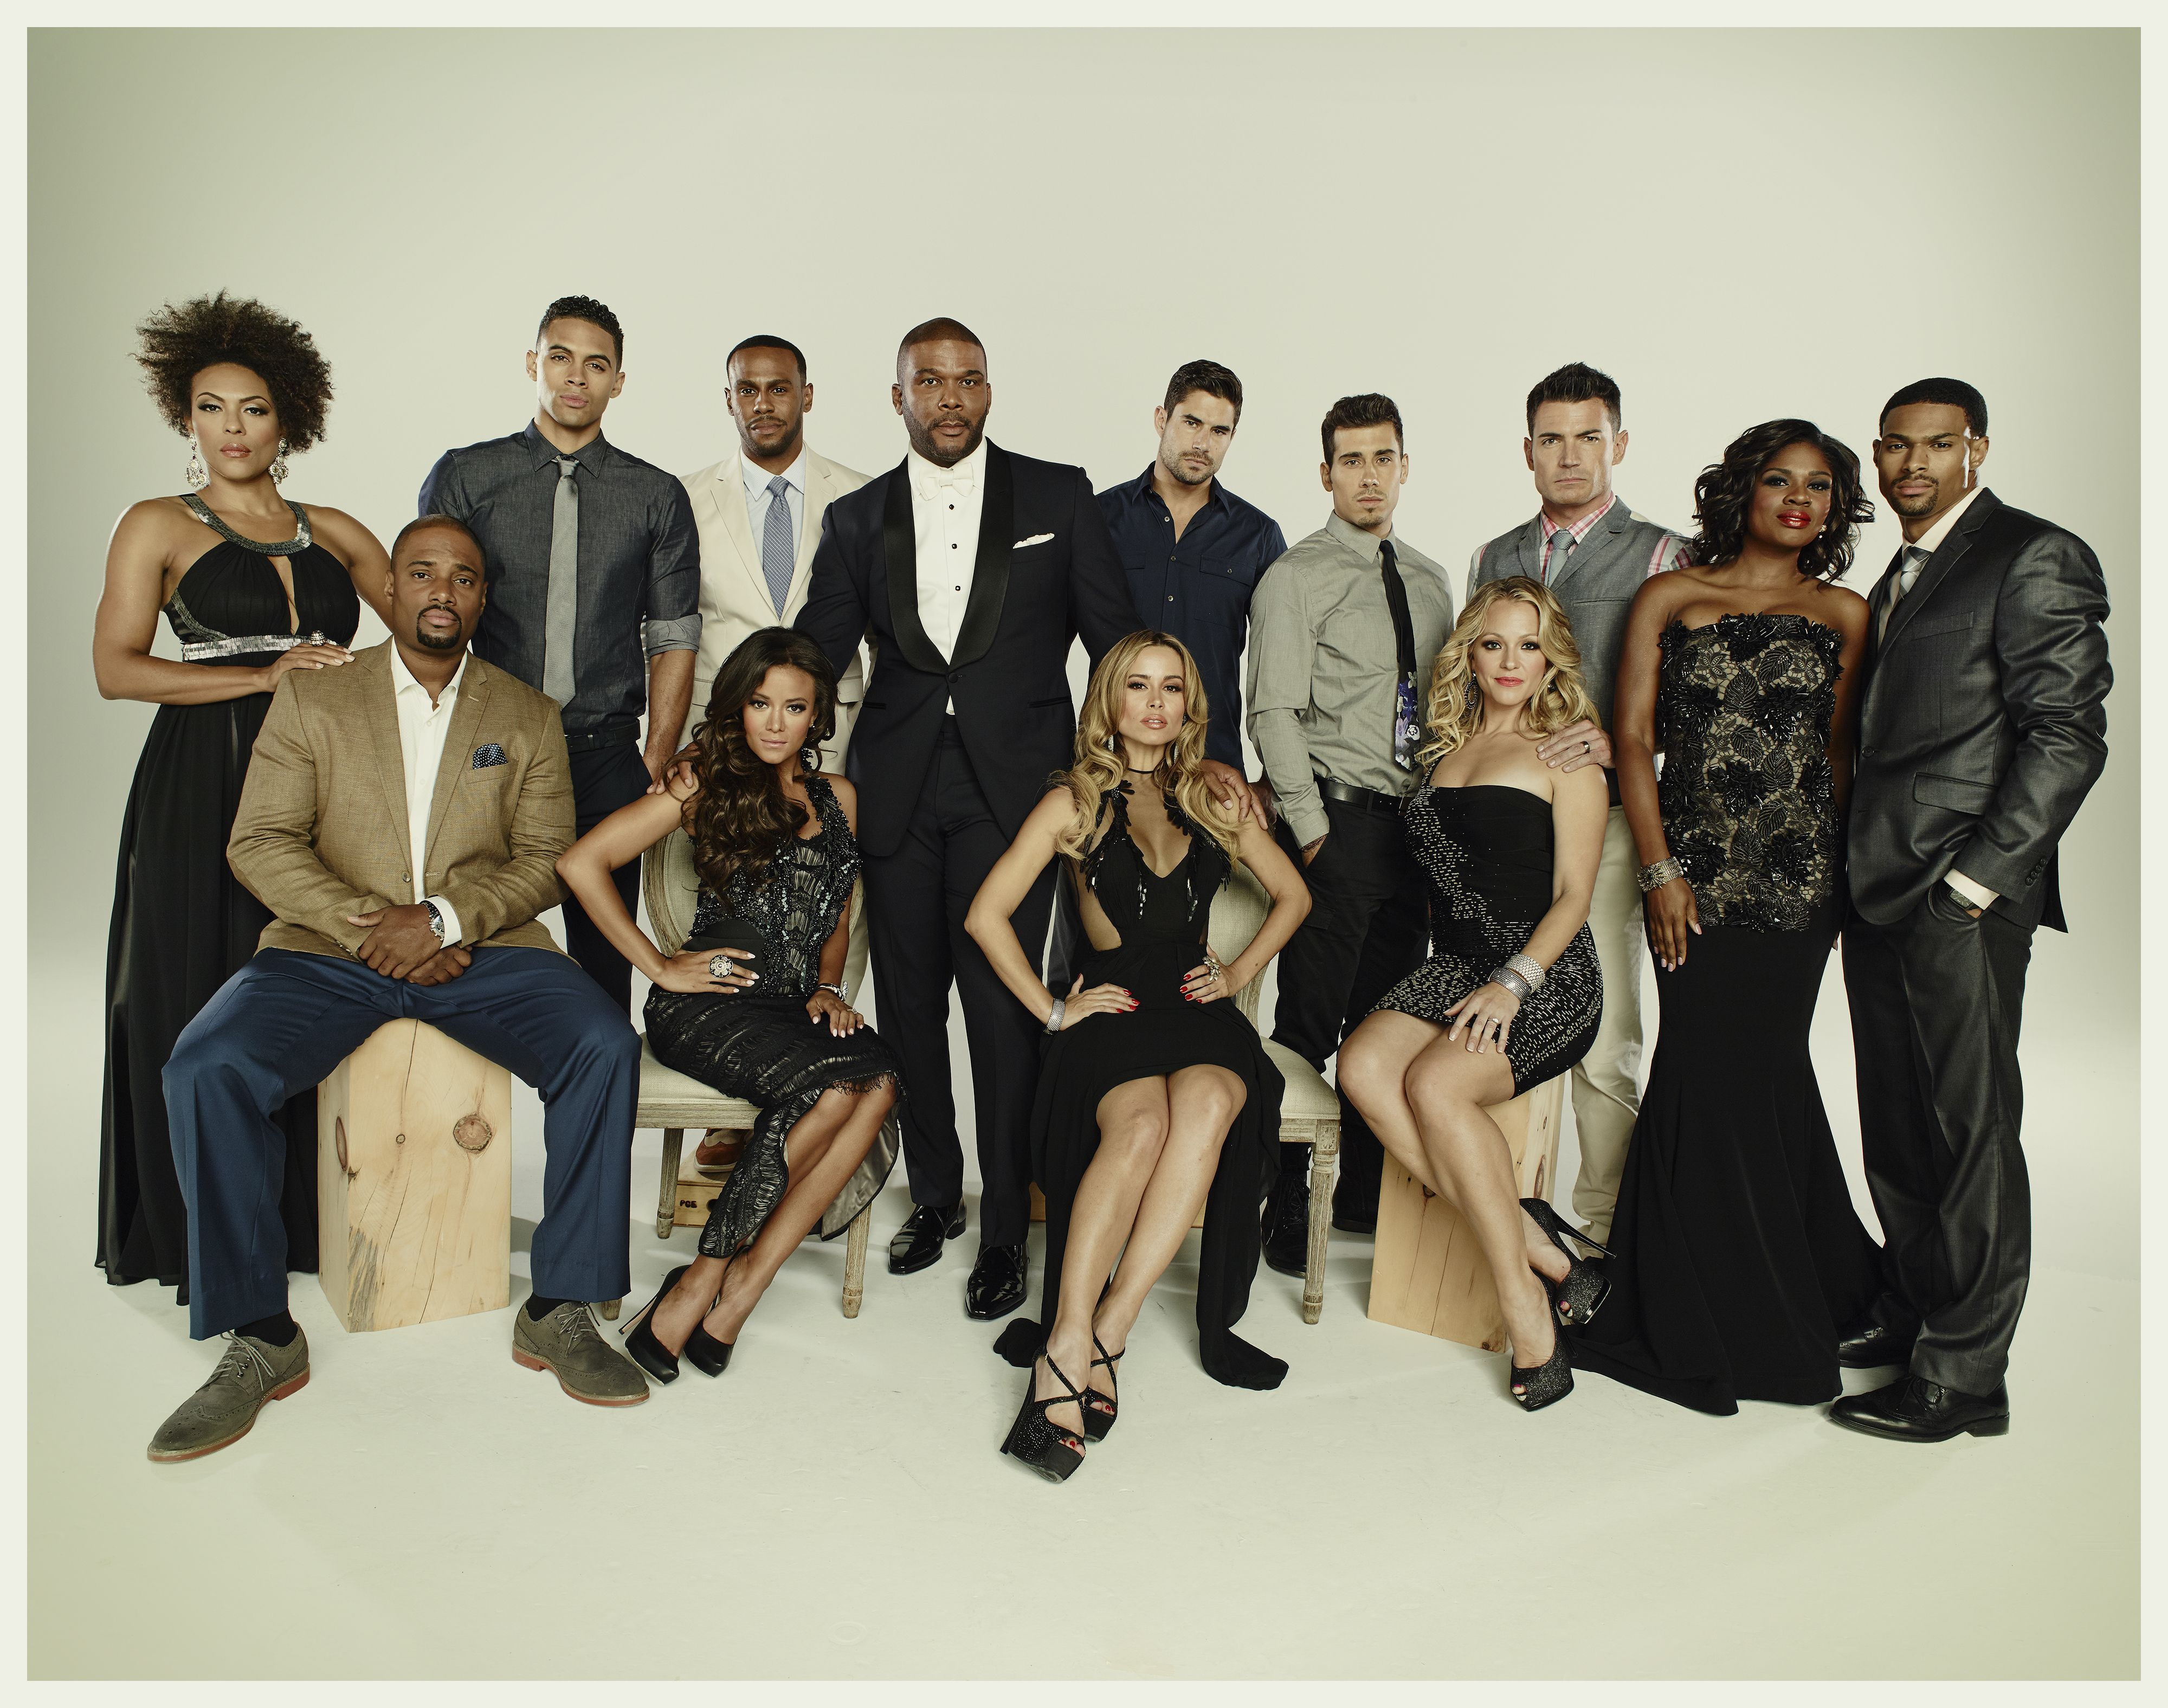 Owns Tyler Perrys If Loving You Is Wrong Full Cast Image With